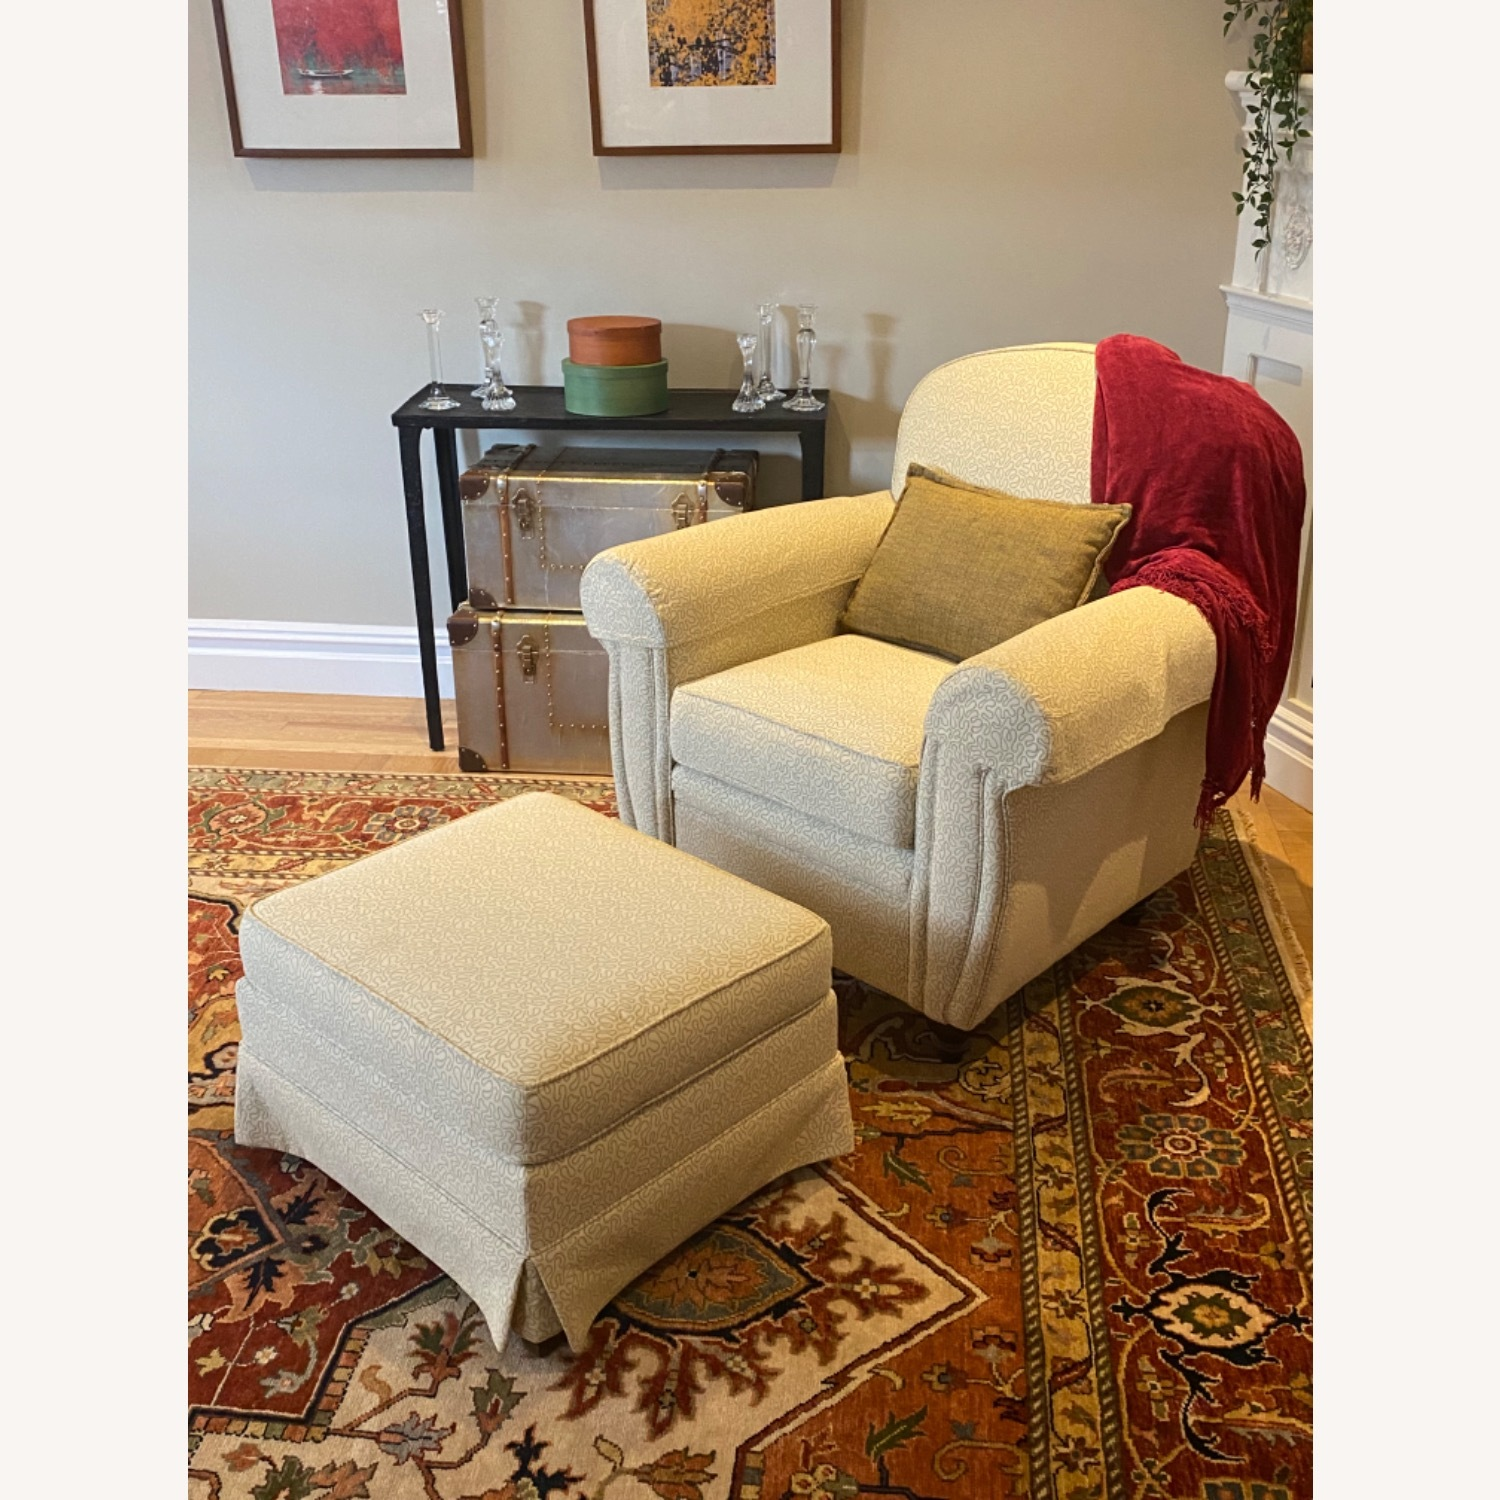 Ethan Allen 2 Upholstered Arm Chairs with 1 Ottoman - image-2